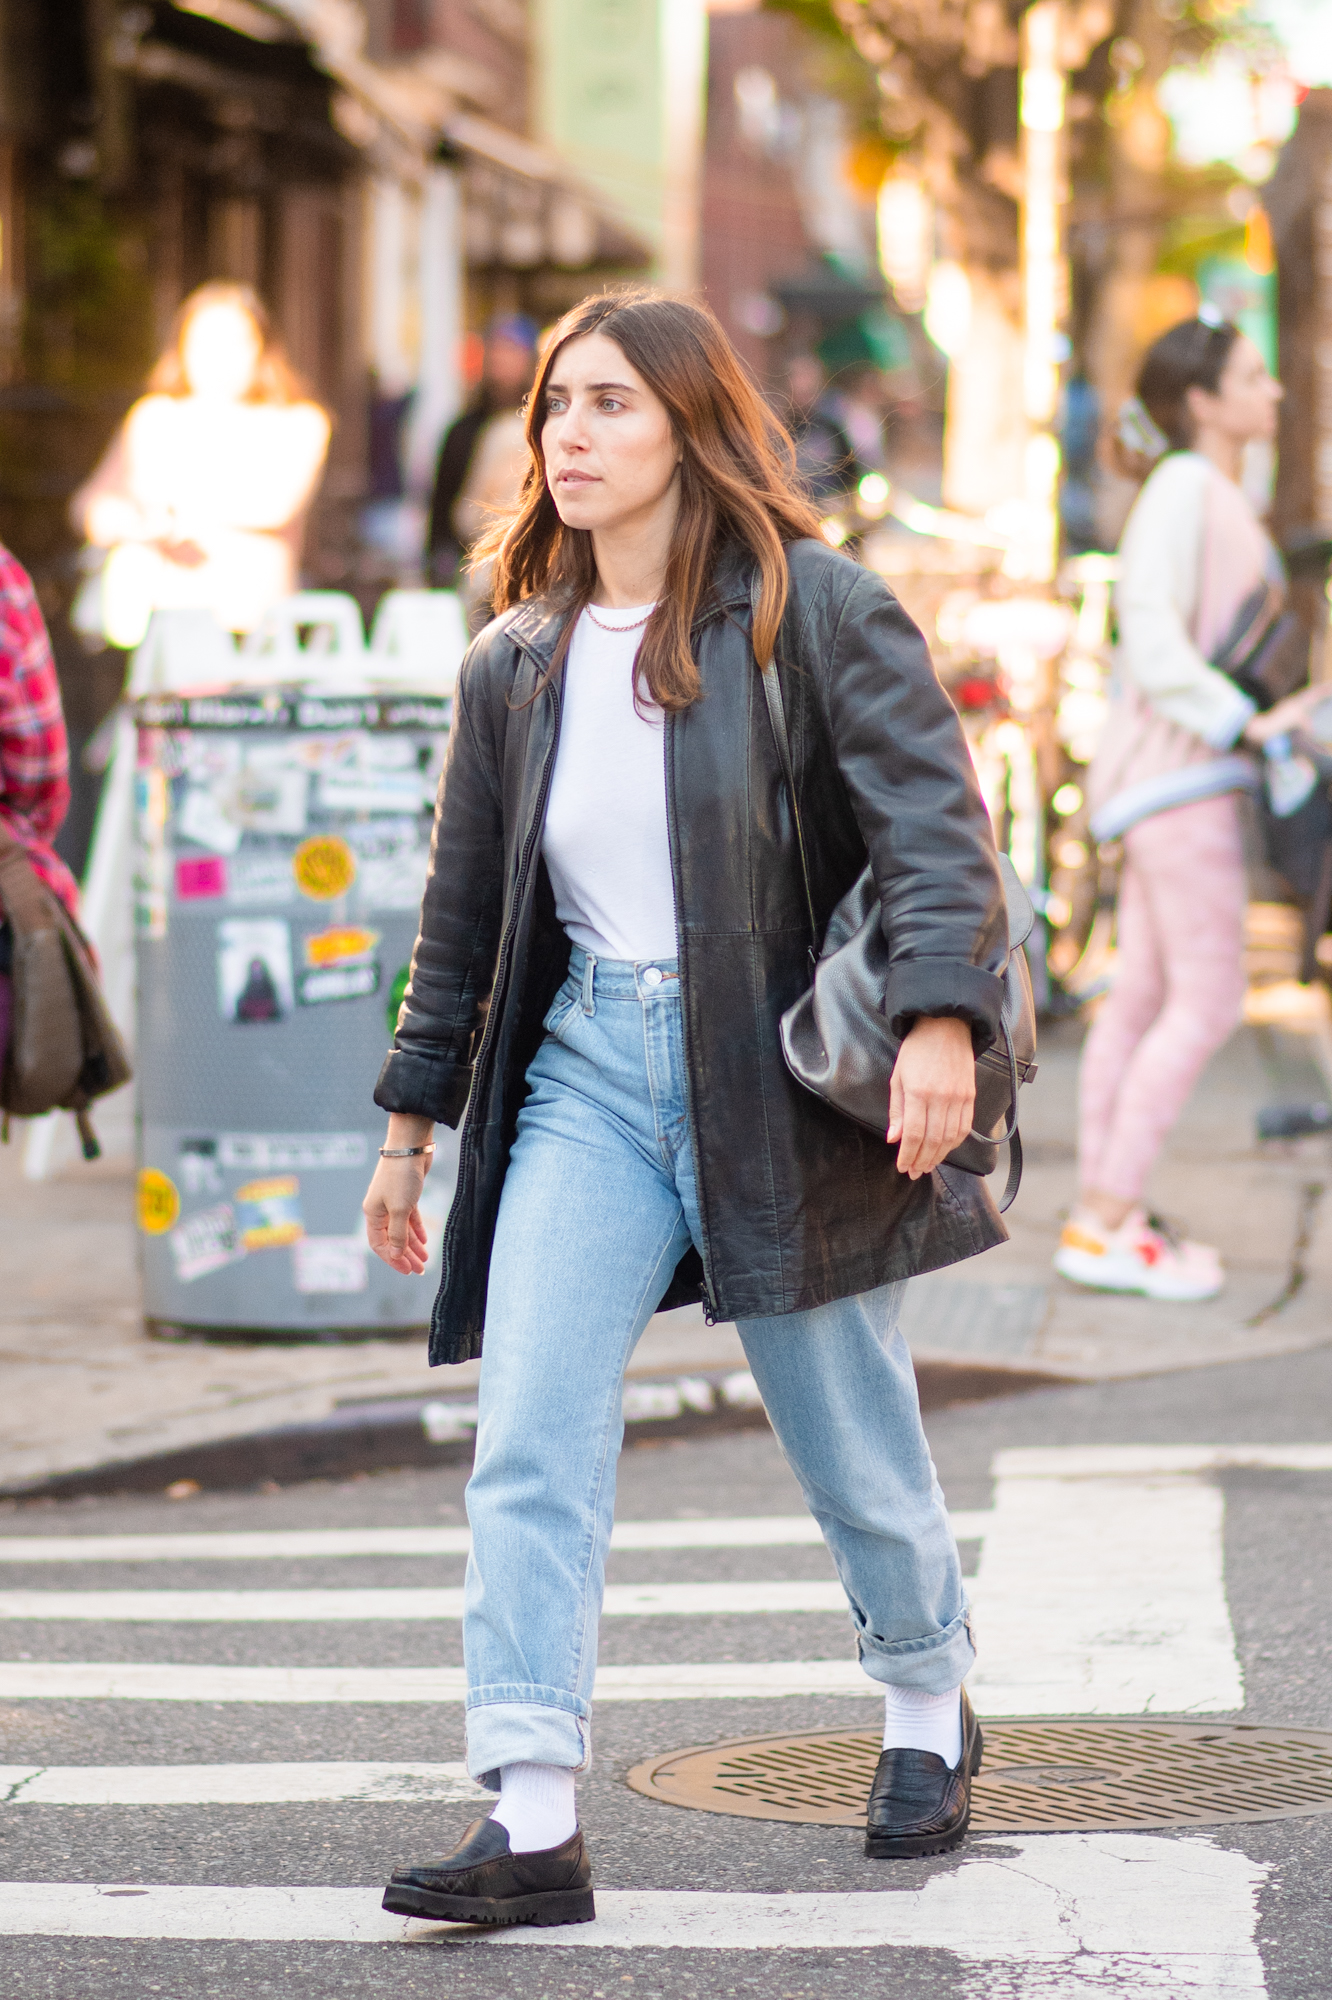 NYC street style fall outfit idea - woman wearing oversized leather blazer, white t shirt, and straight leg jeans outfit - Karya Schanilec NYC fashion photographer